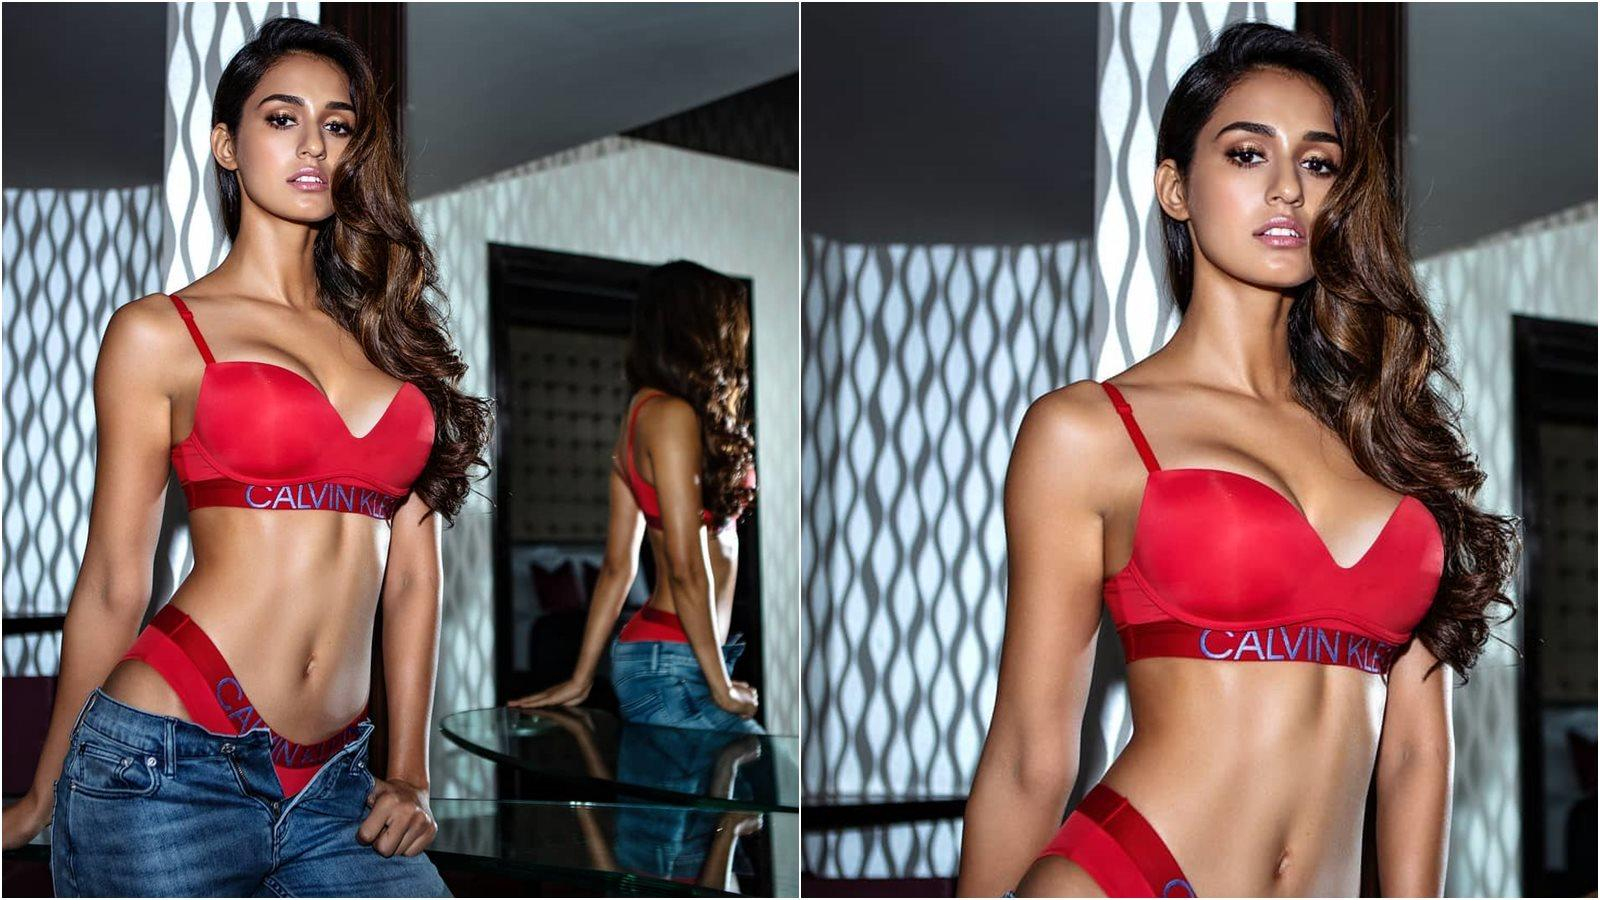 Disha Patani takes hotness to another level in this two piece red lingerie